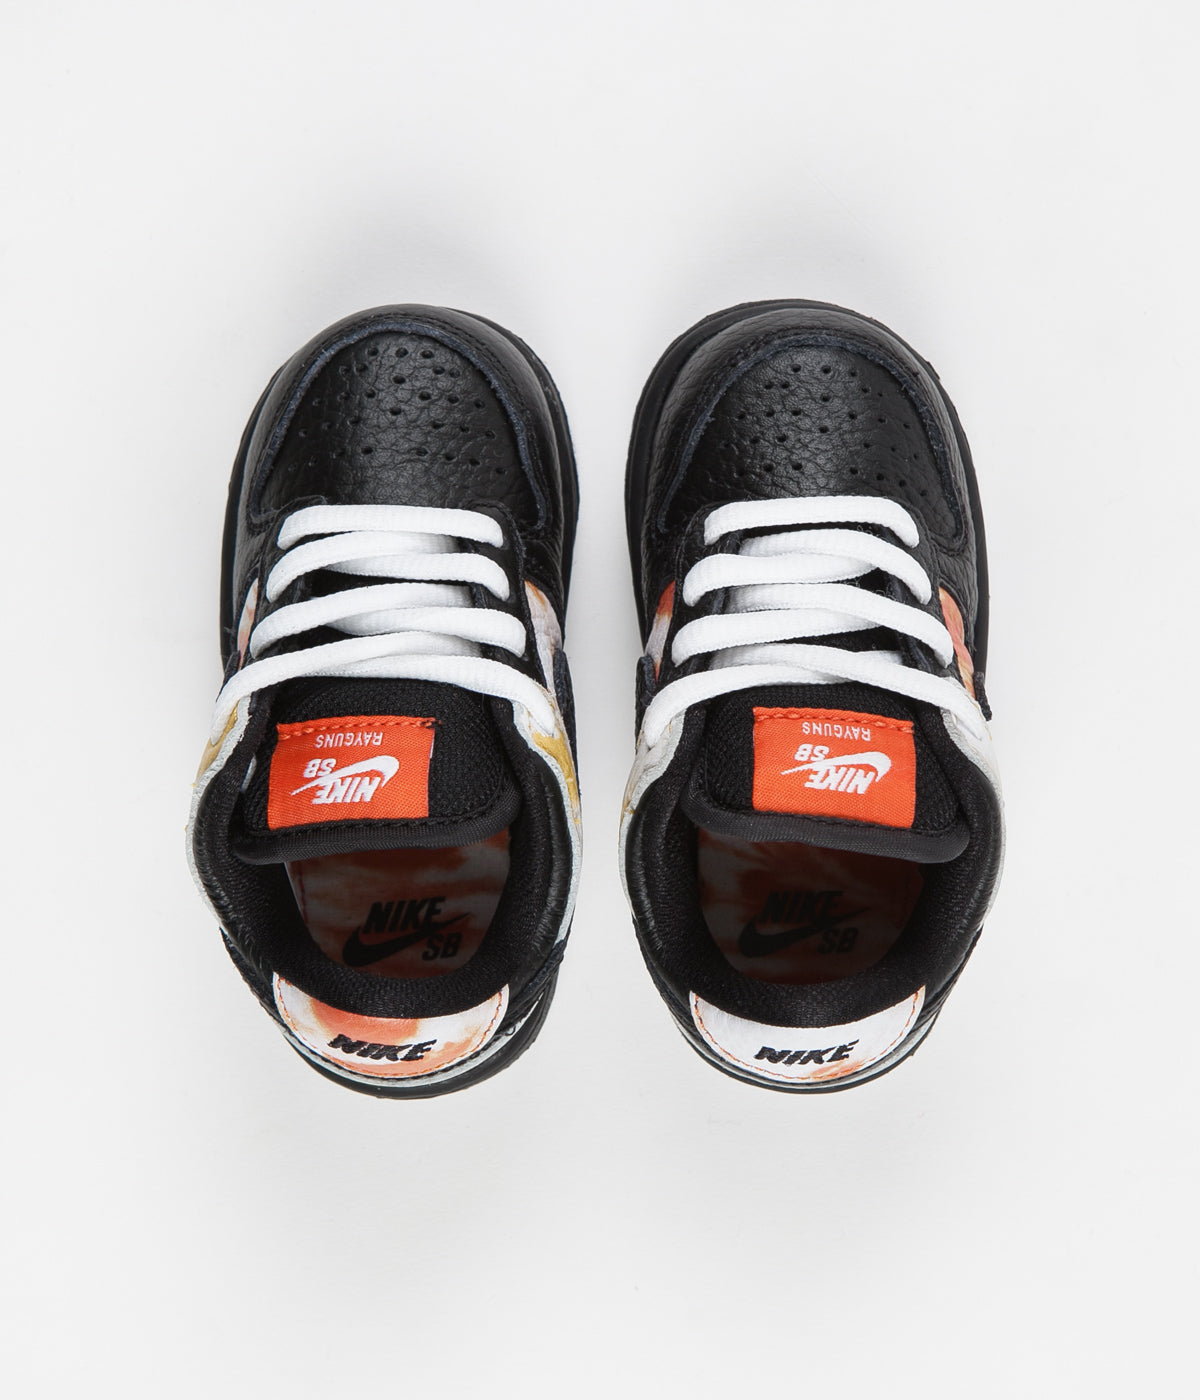 Nike SB 'Raygun Tie-Dye' Dunk Low Pro (Toddler) Shoes - Black / Black - Orange Flash